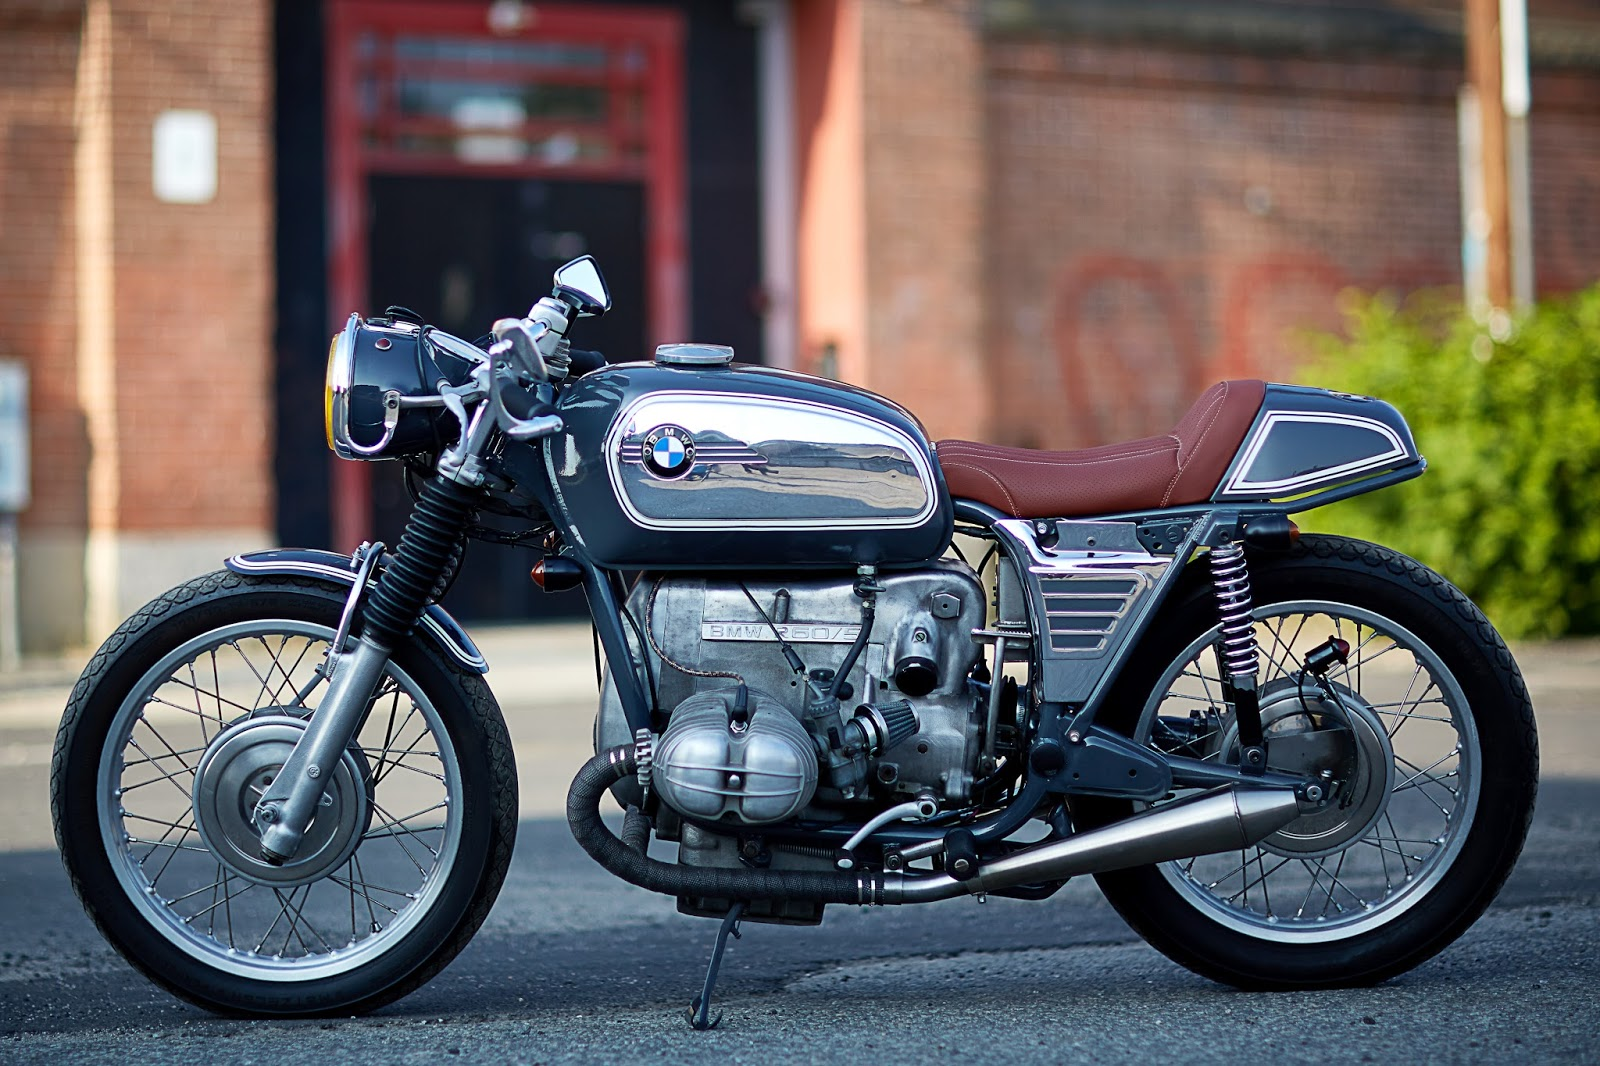 Airhead Bmw Cafe Racer